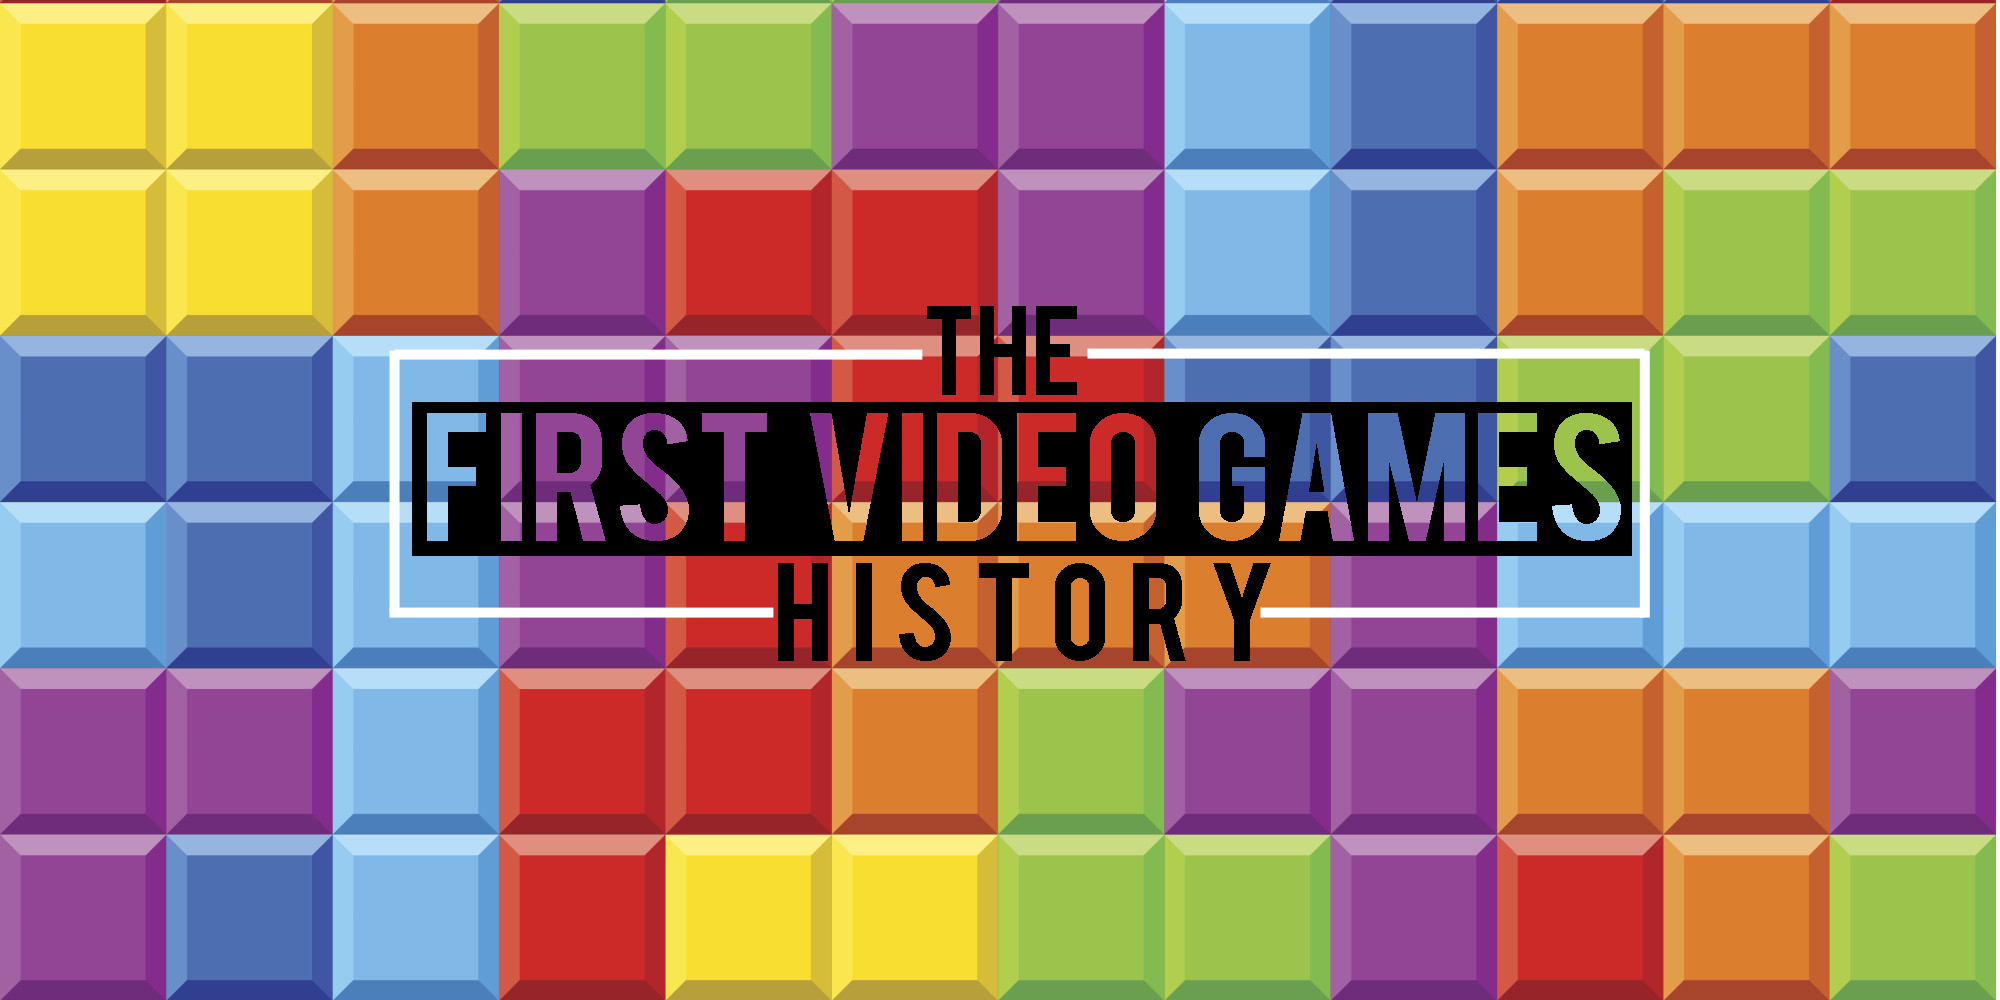 The First Video Games in History